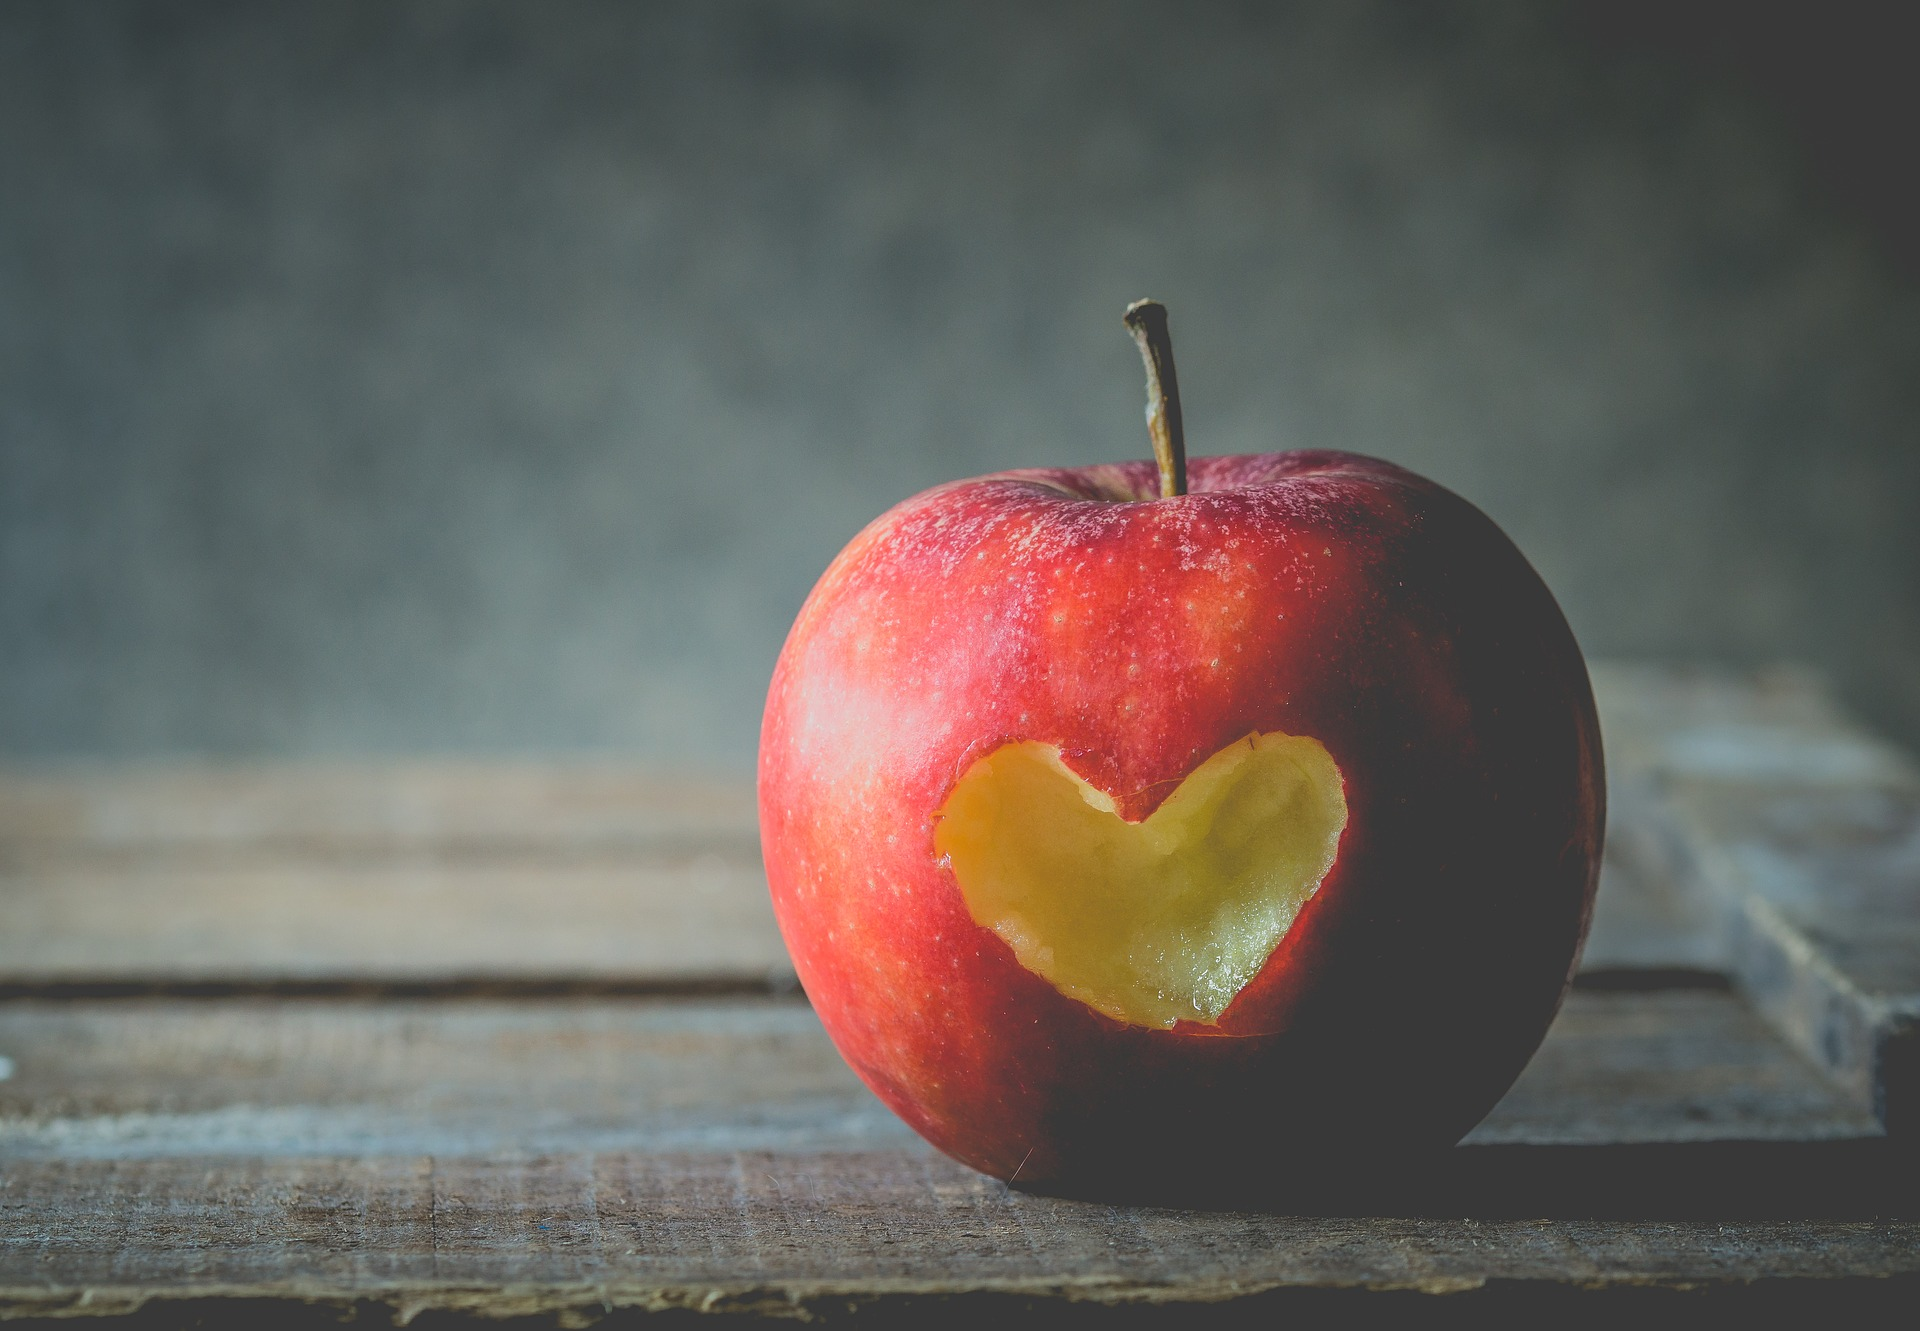 Apple Shaped Women Have Higher Risk Of Heart Even